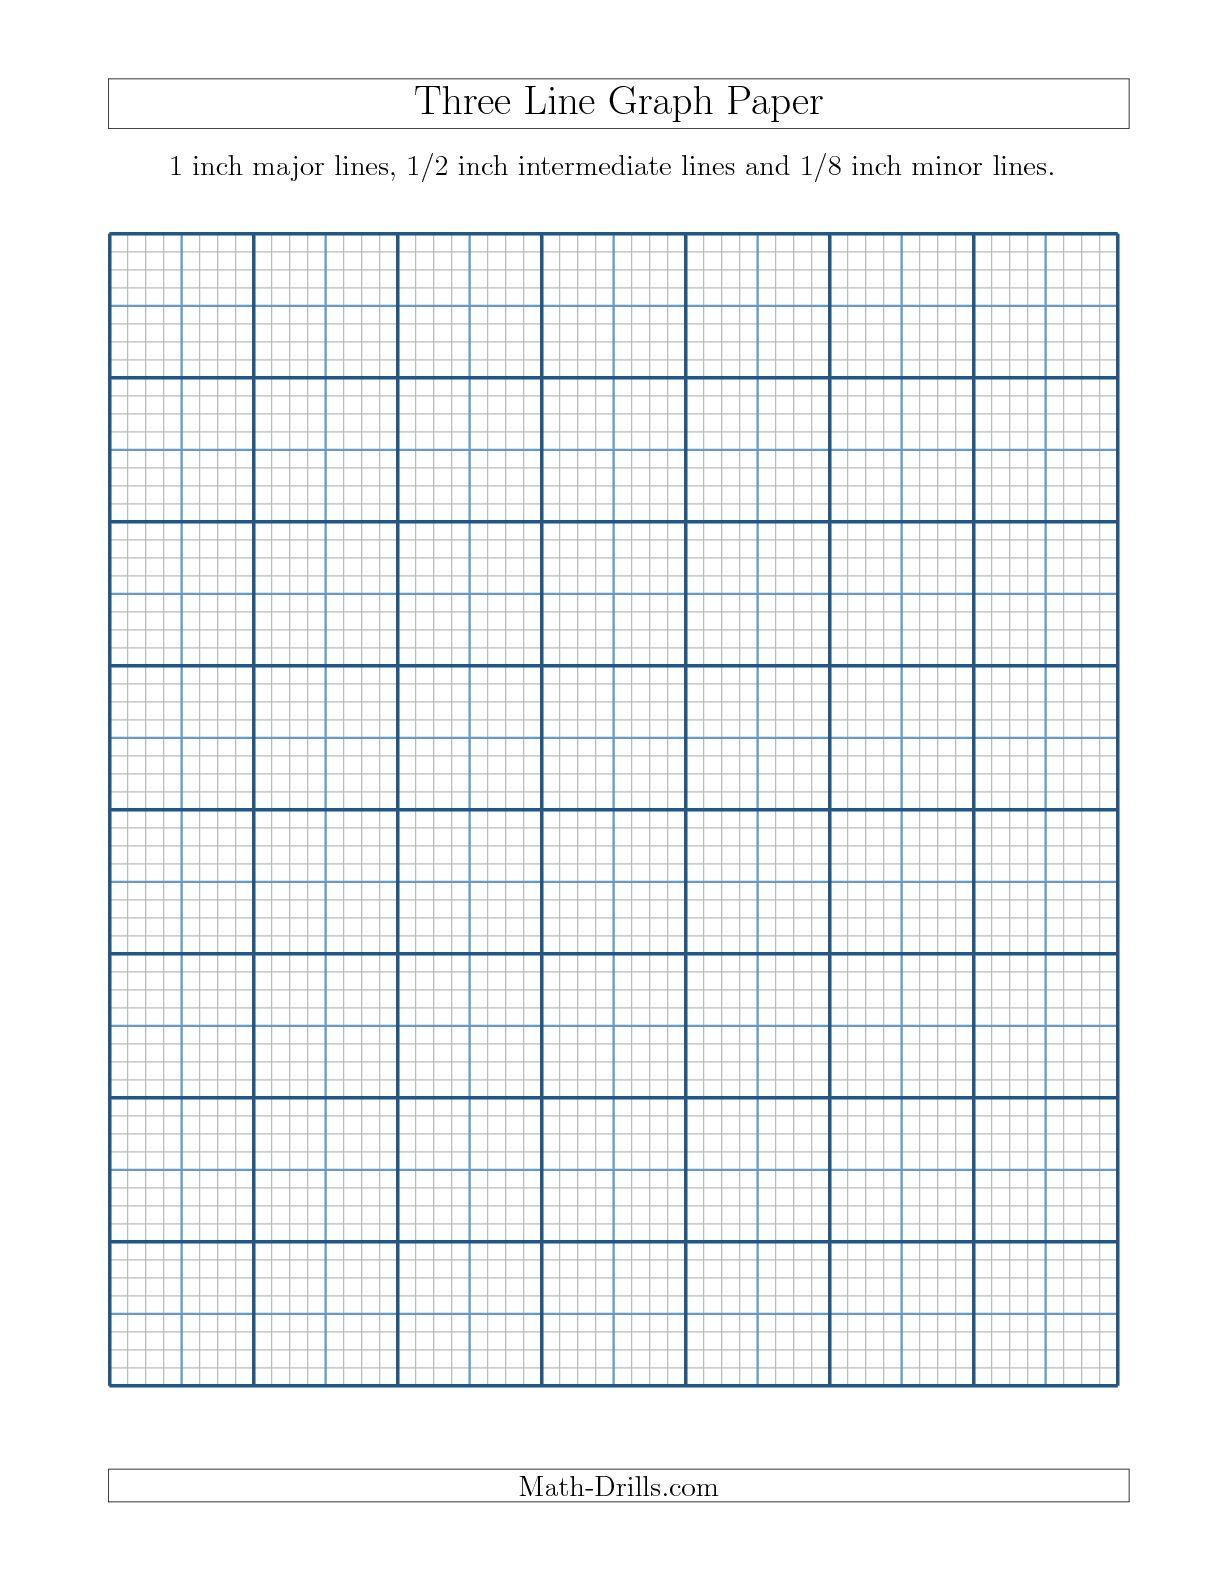 Worksheets Graph Paper Worksheet the three line graph paper with 1 inch major lines 12 new intermediate and minor a math worksheet